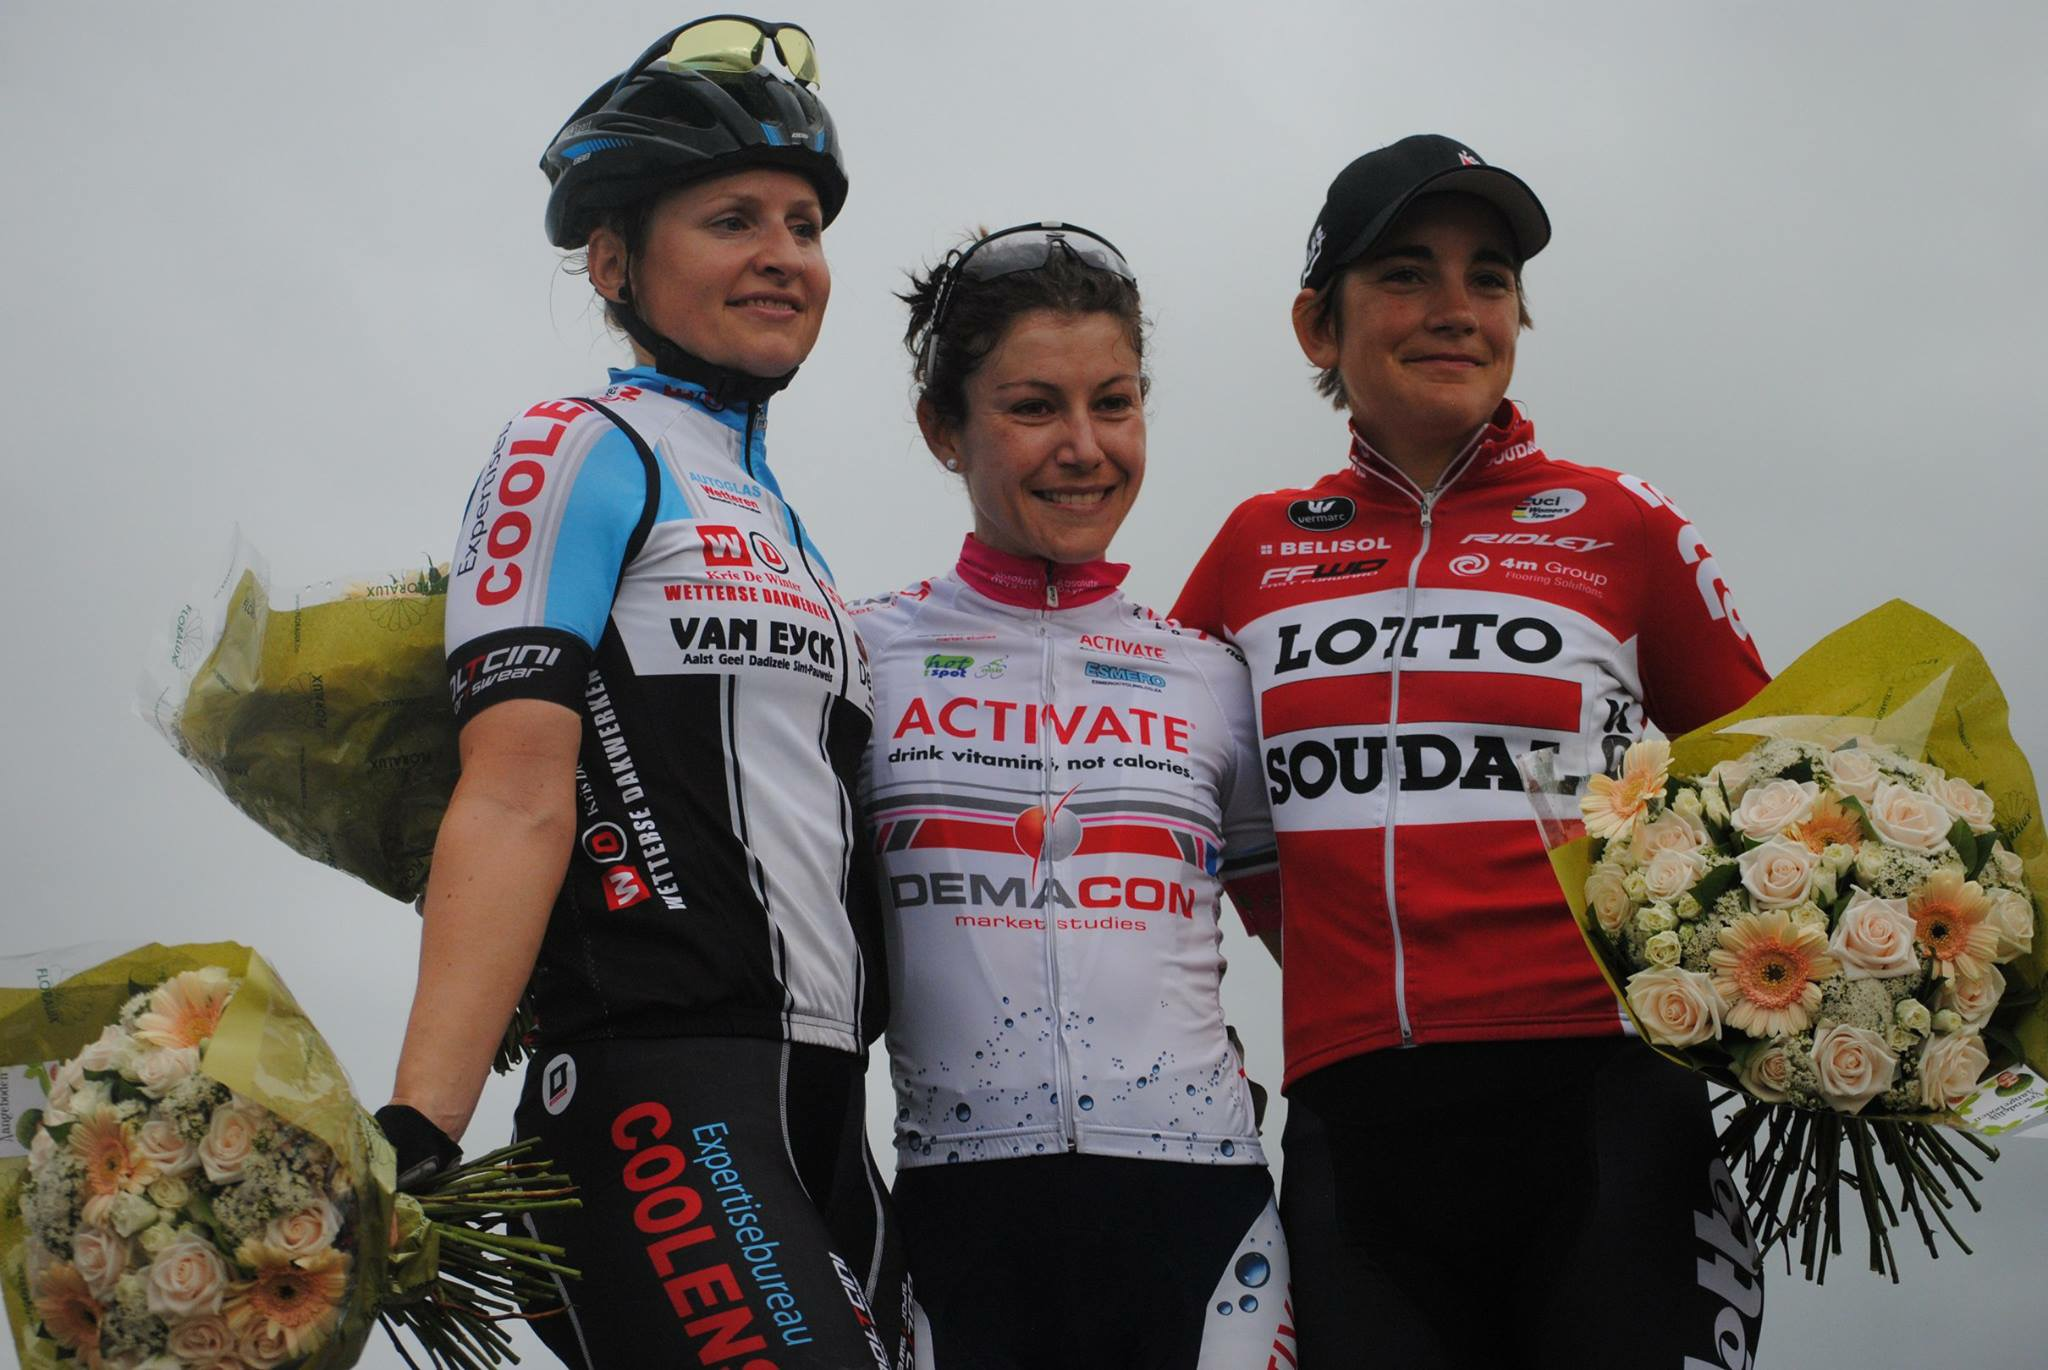 An-Li Kachelhoffer (Team Activate/Demacon) is ecstatic to have a European win behind her, after she won the De Gemeente Ledegem in Belgium on 23 August. Kachelhoffer is now currently competing with the South African Women's Road Cycling Team in the UCI 2.2 stage race, the Tour Cycliste Femini International de l'Ardeche in France from 2-7 September.